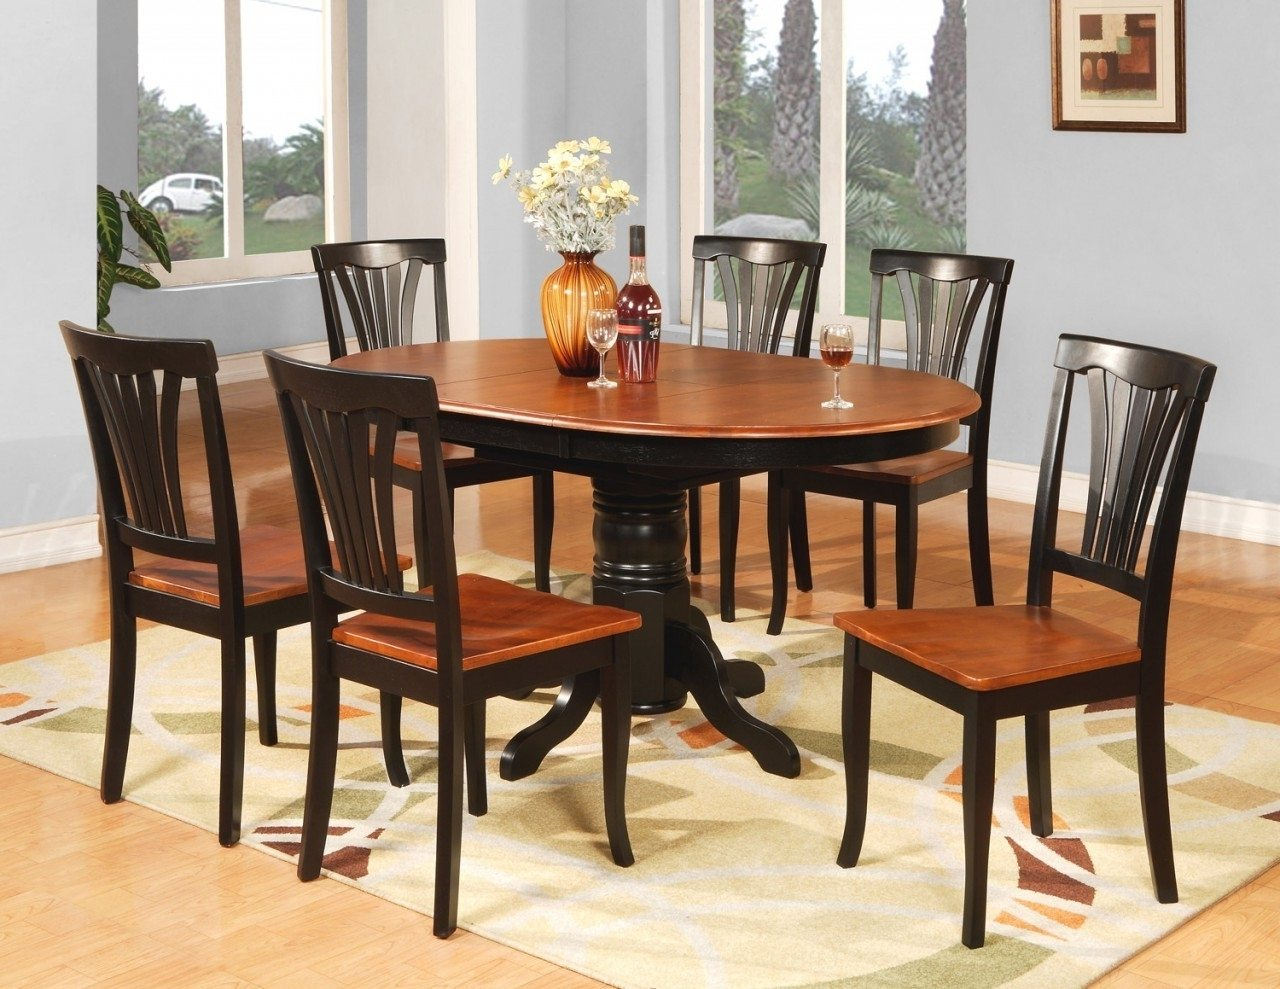 Cheap dining room table sets 28 images dining room for Reasonable dining room sets